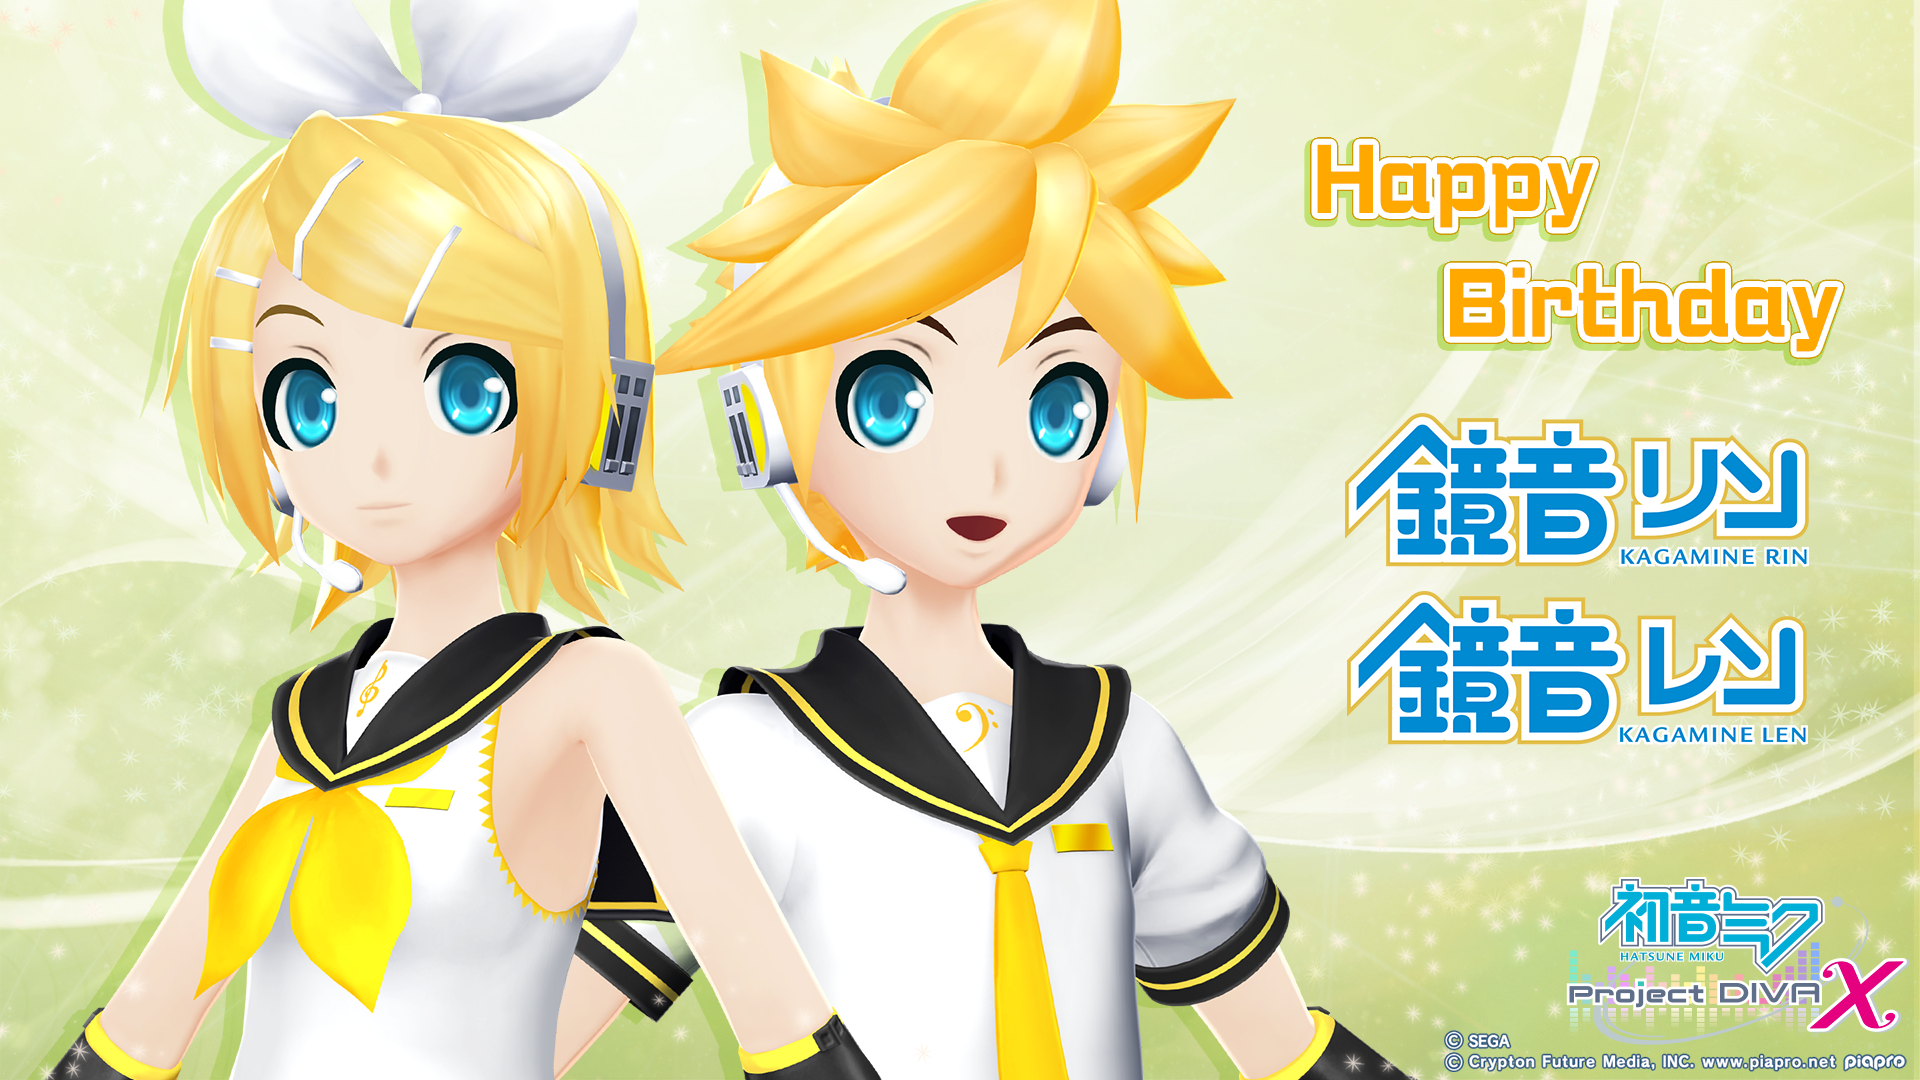 Ps4 ps vita exclusive hatsune miku project diva x gets a new trailer to celebrate rin and len 39 s - Kagamine rin project diva ...